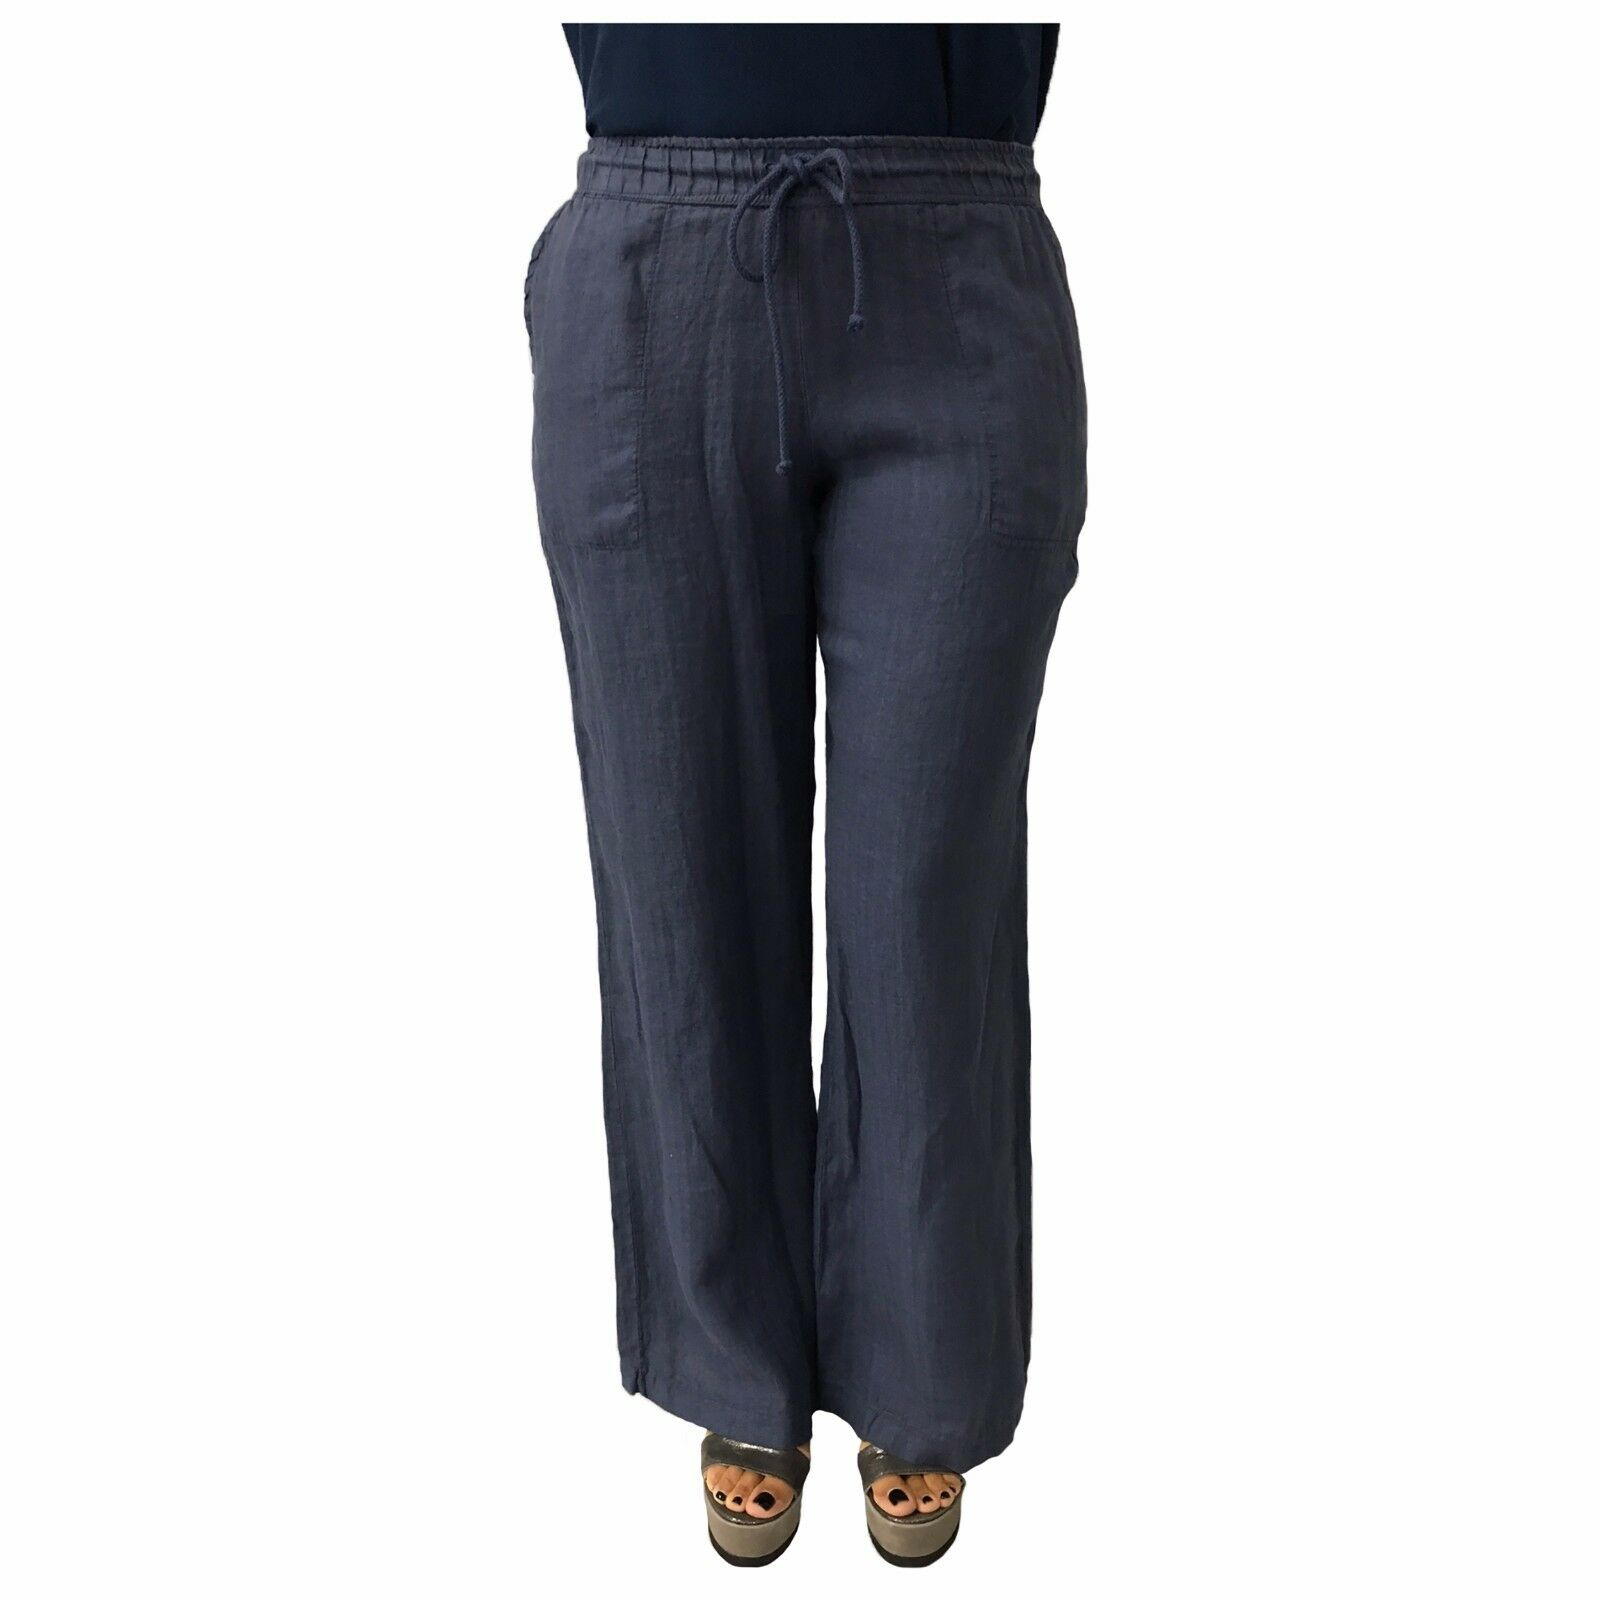 The fee maraboutee Woman Pants Tie Farbe Denim 100% Linen Made in